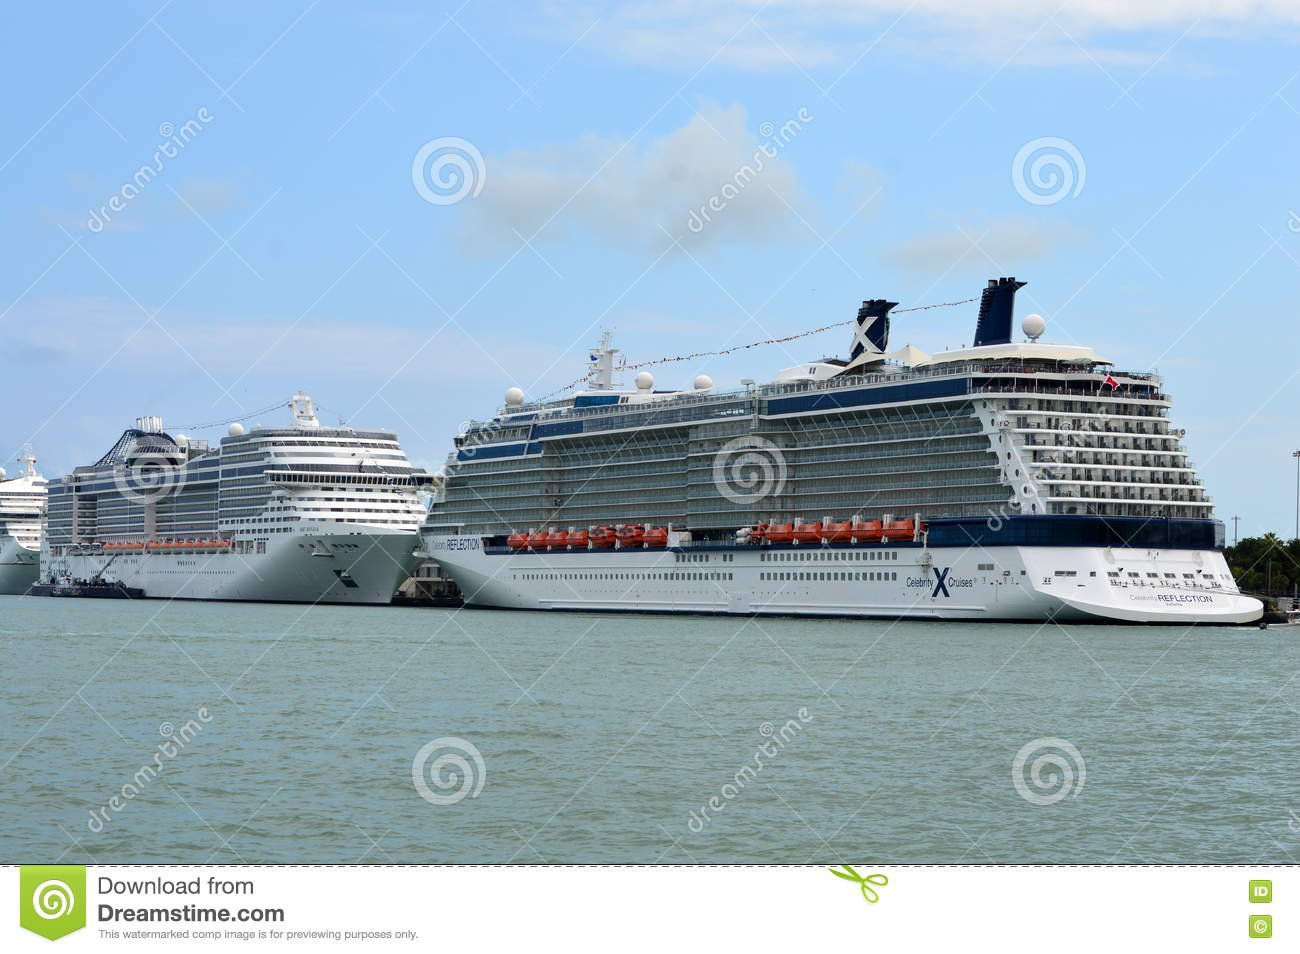 Cruises from Florida - Miami & Tampa | CruisesOnly